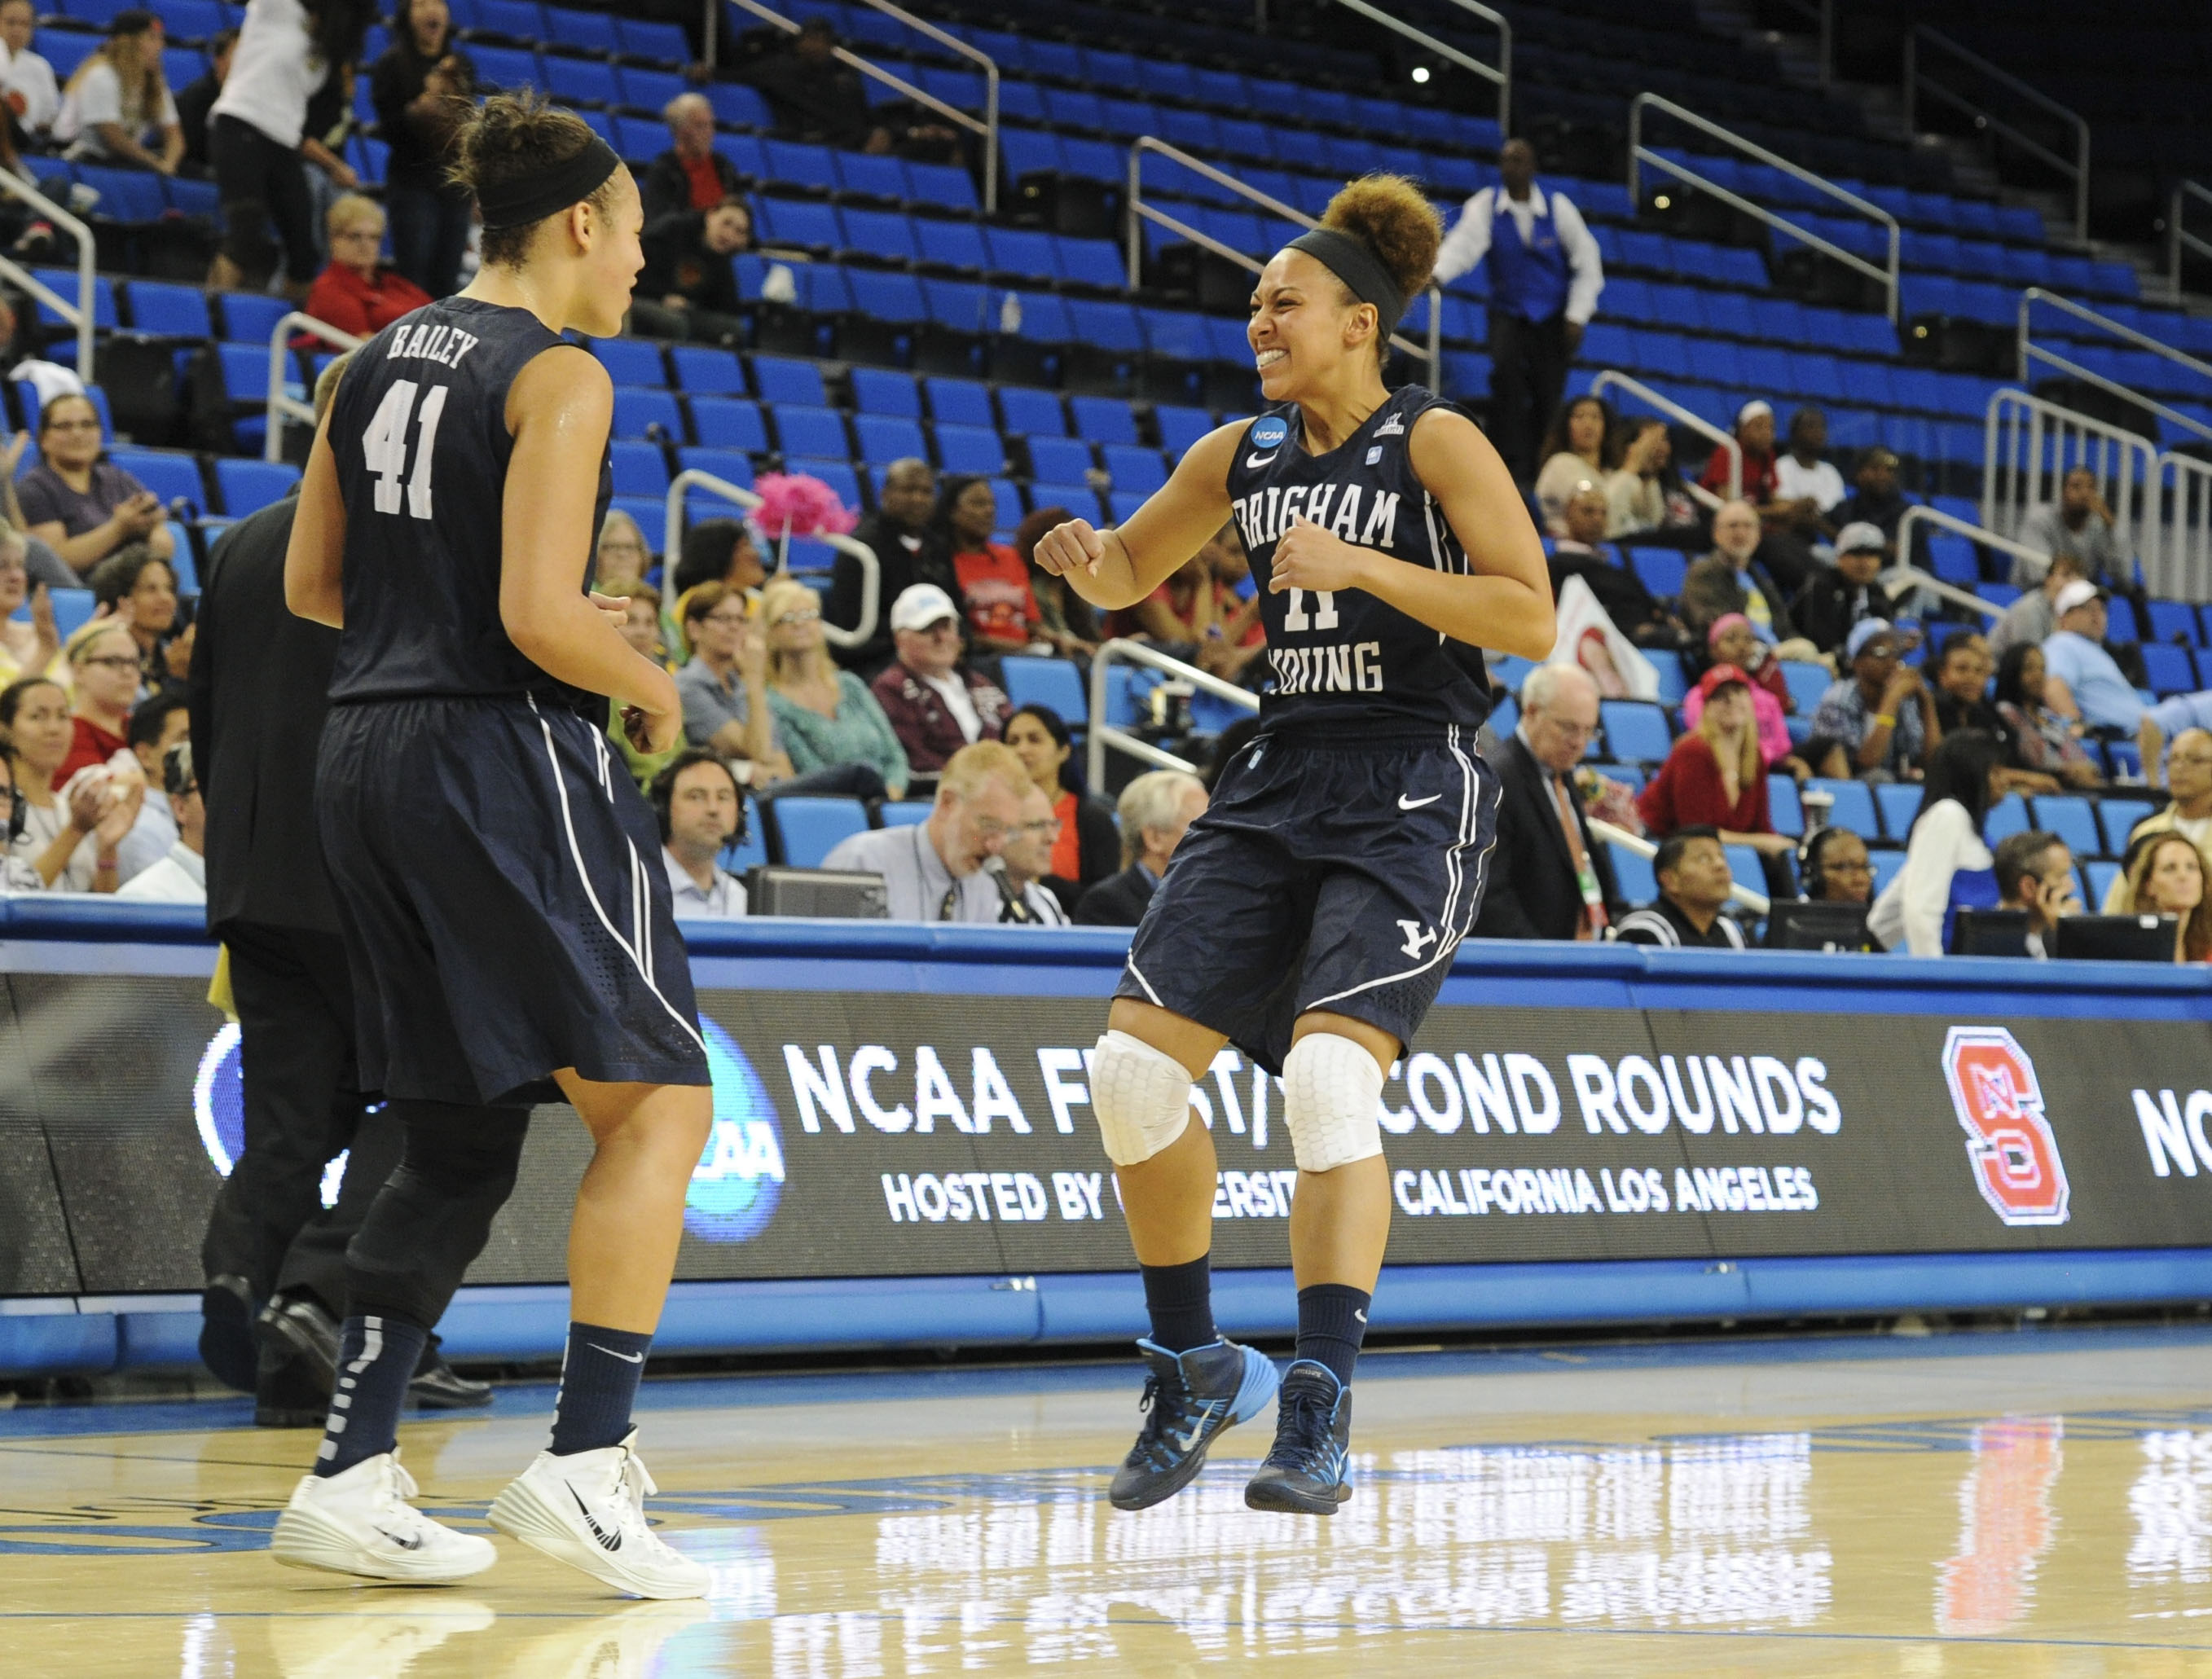 Morgan Bailey and Xojian Harry celebrate after a win in the NCAA Tournament last year.